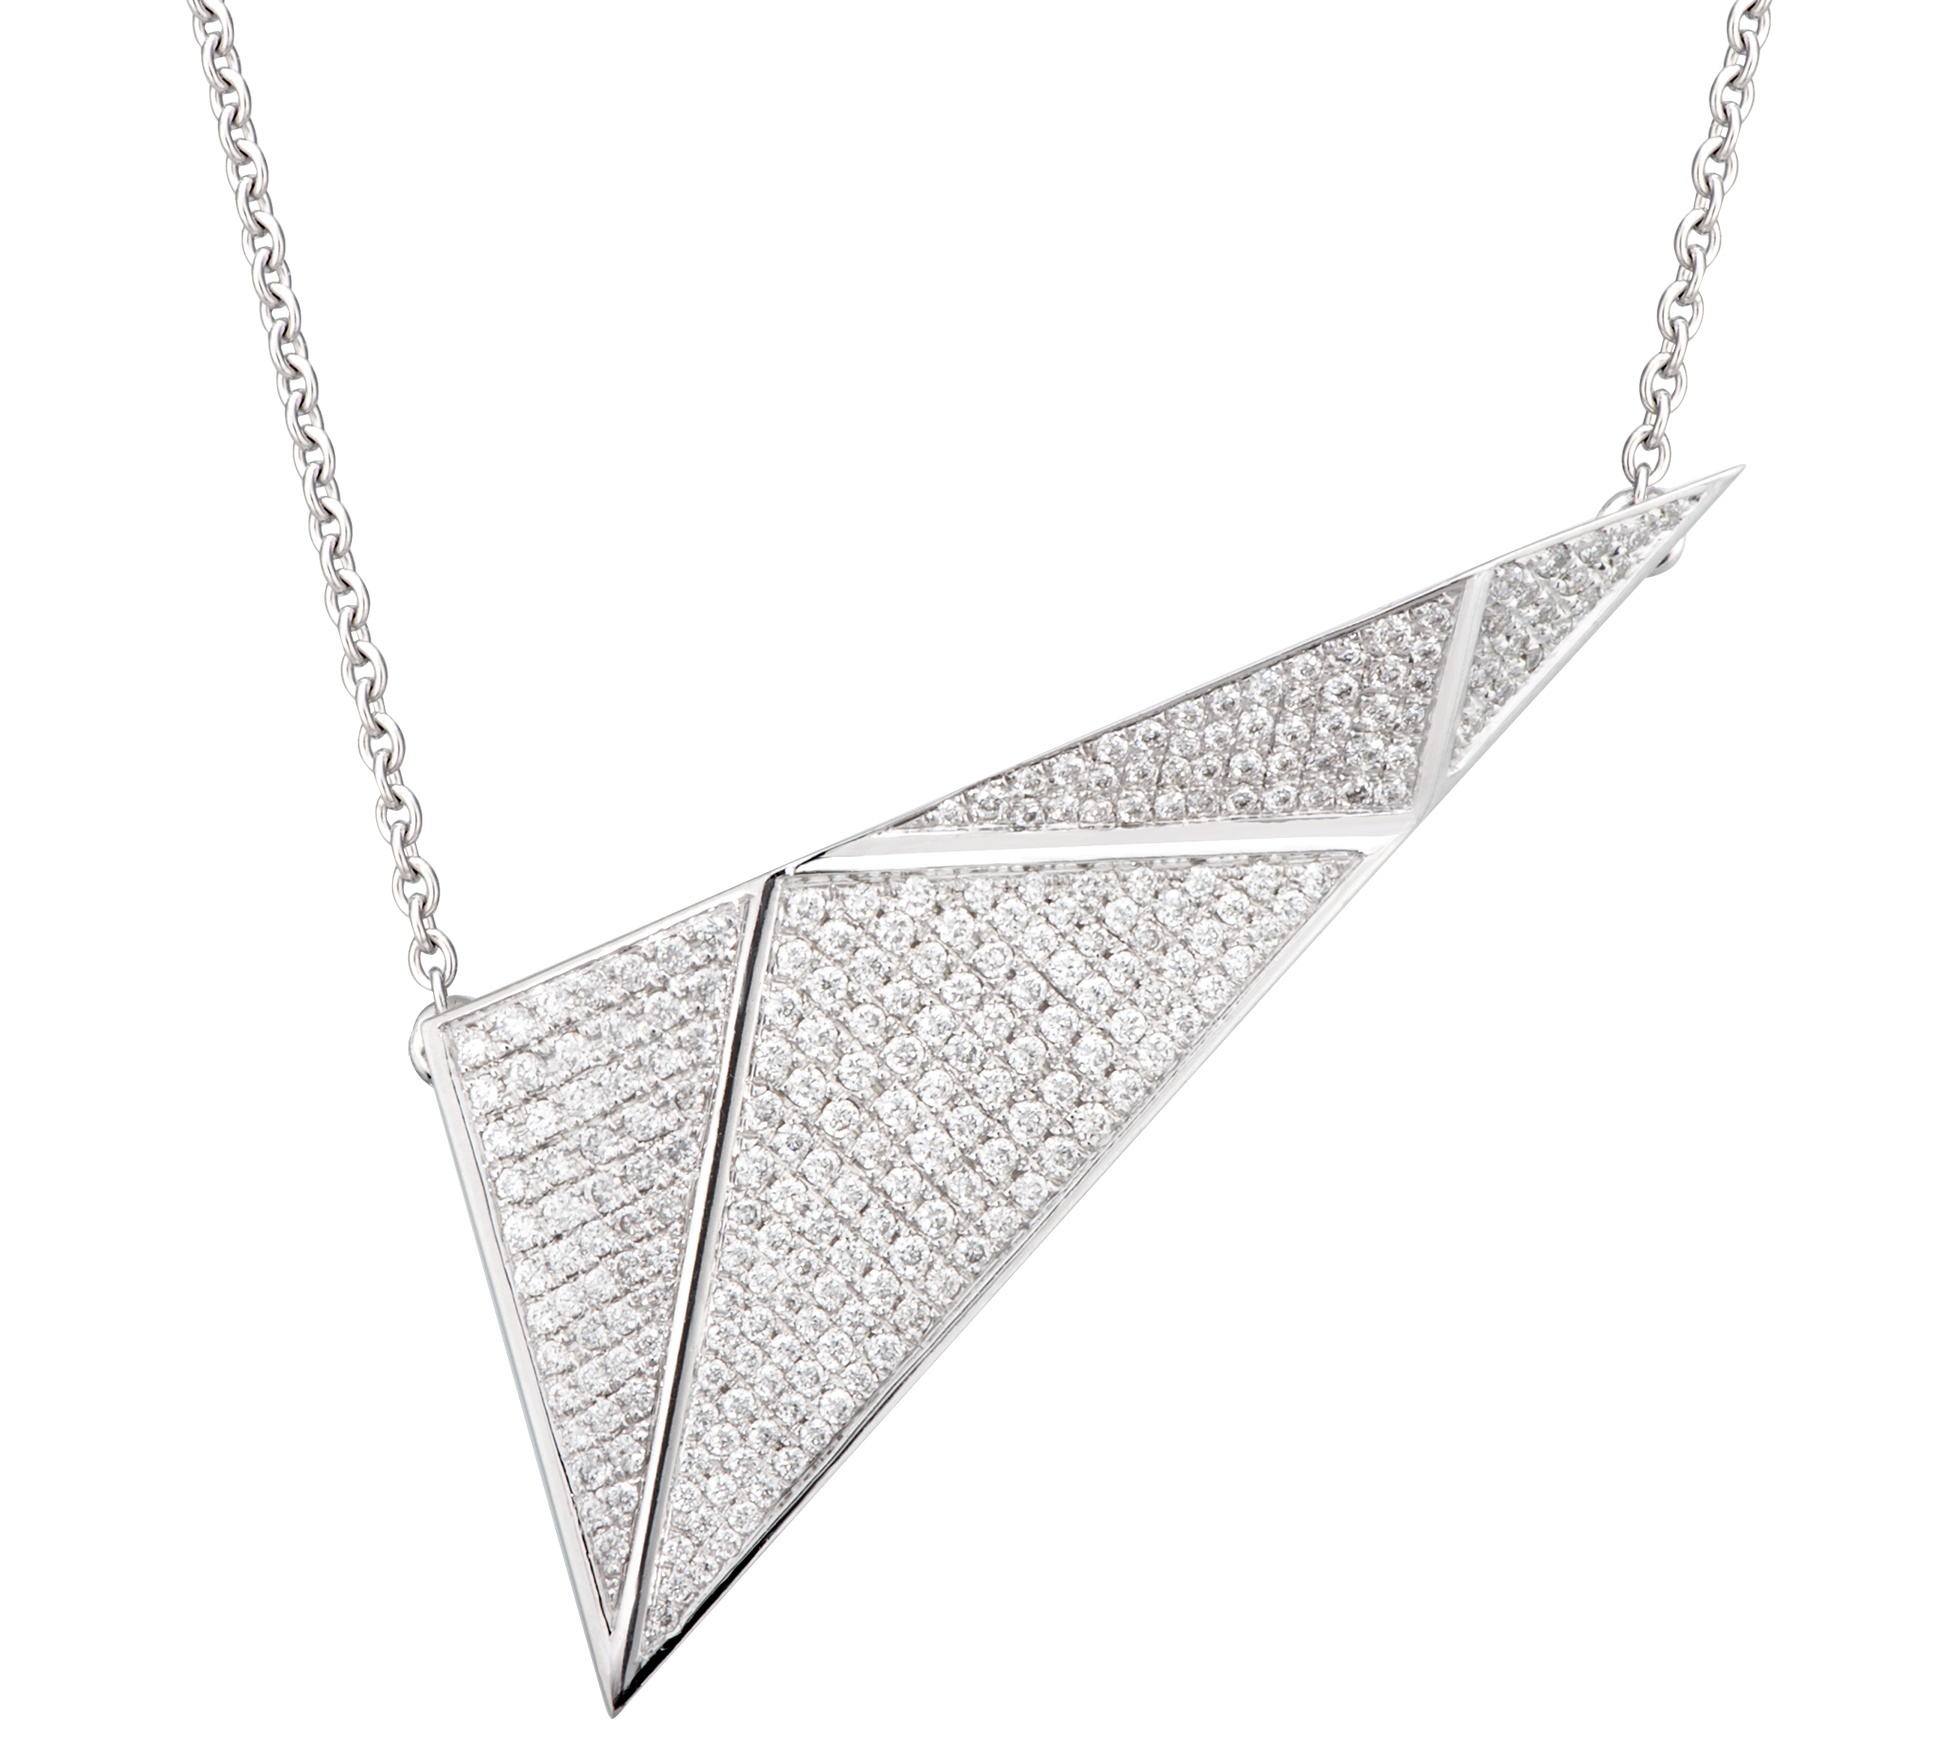 Carrera y Carrera Iceberg necklace | JCK On Your Market